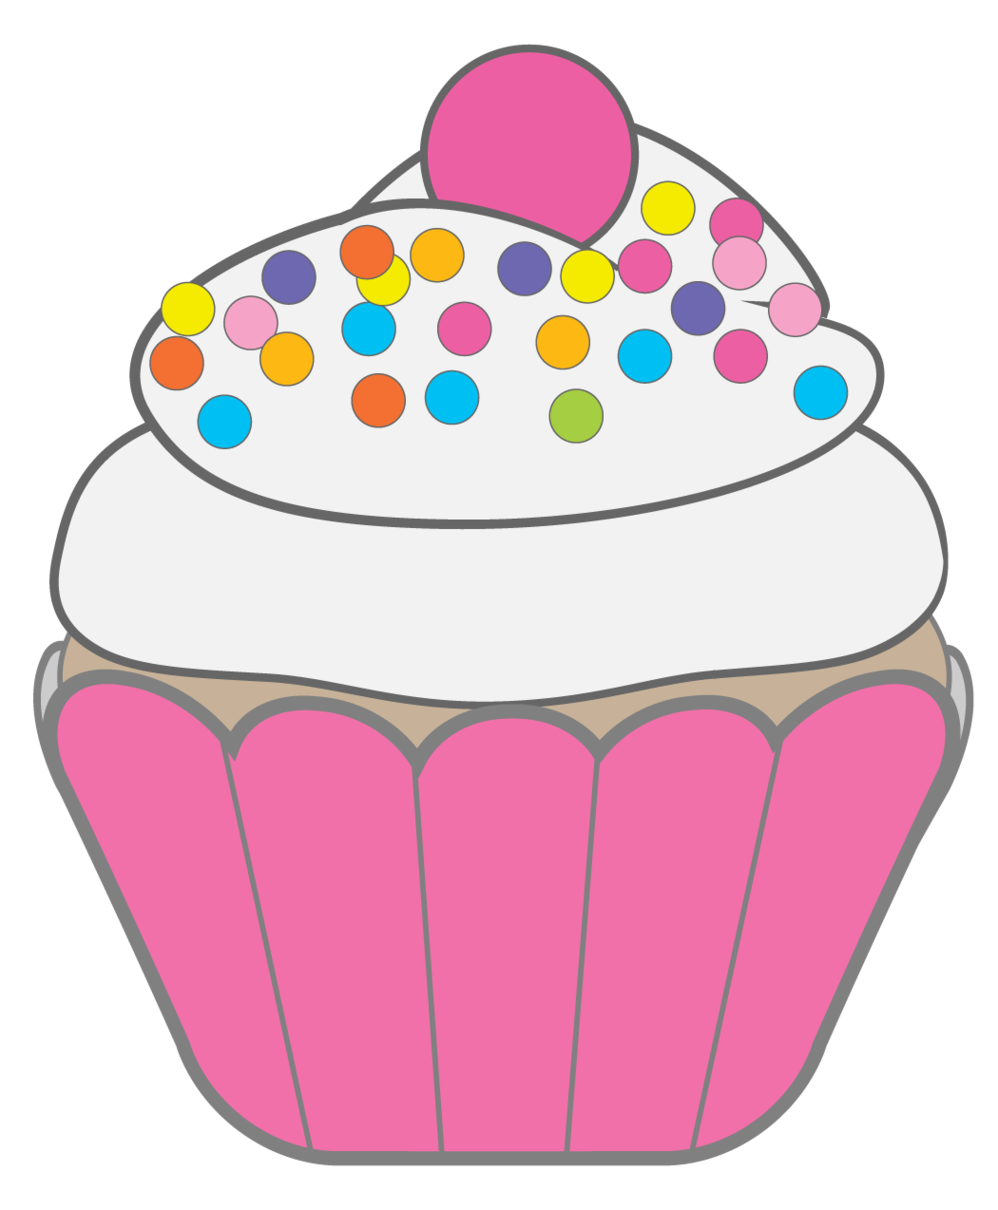 Muffins clipart group. With items clip art